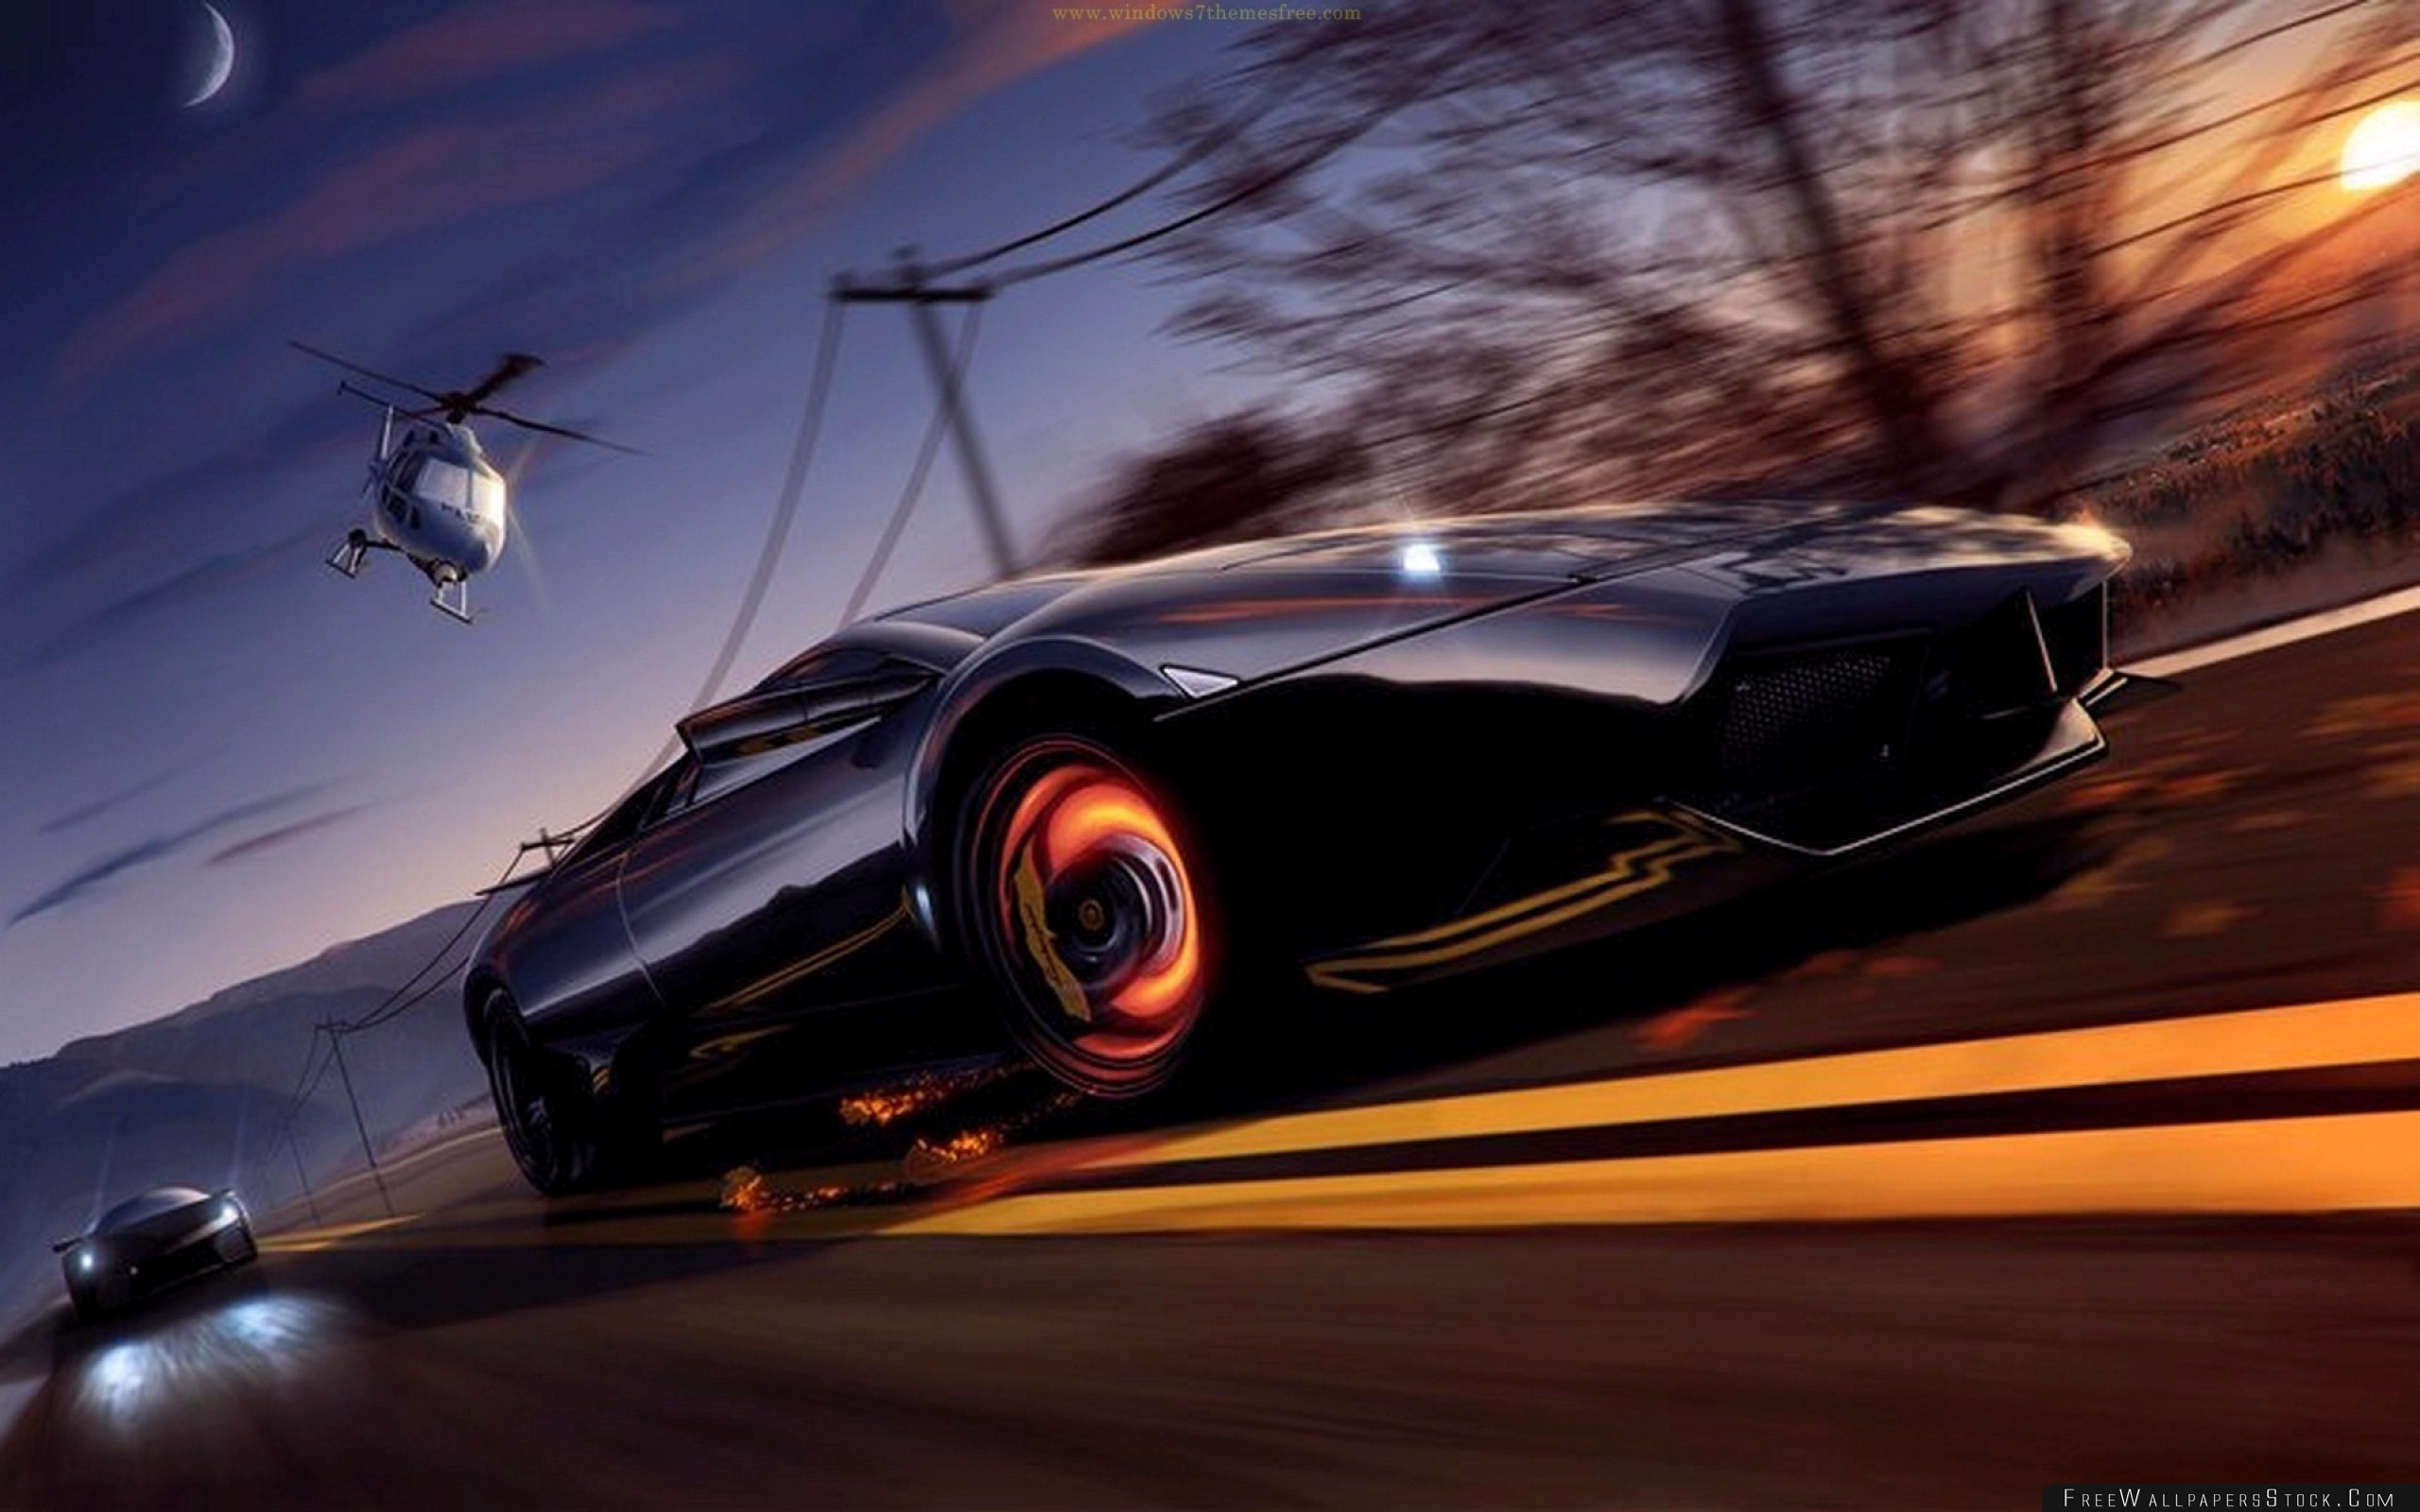 Download Free Wallpaper Nfs Need For Speed Lamborghini Helicopter Road Sunset Moon